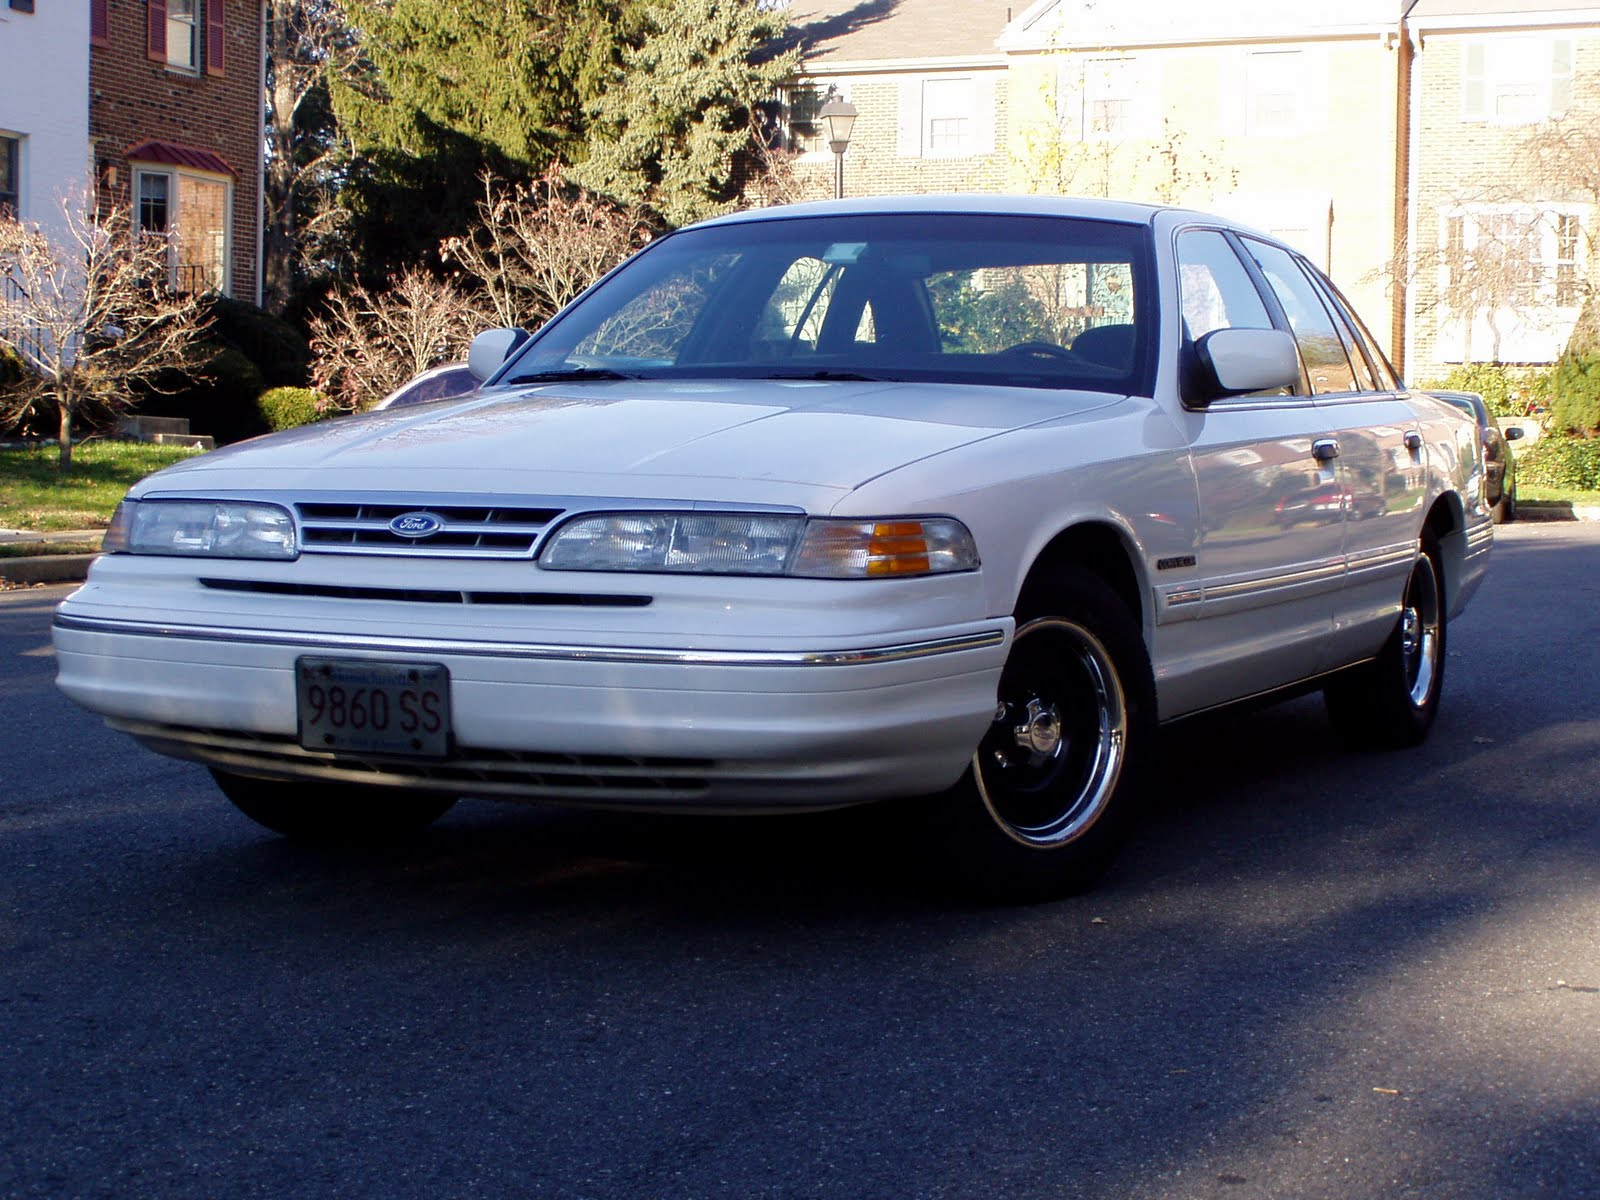 2000 Mercury Cougar Owners Manual Download Ford Crown Victoria 1996 Free Manualthis Includes Introductory Information Safety Restraints Starting Your Warning Lights